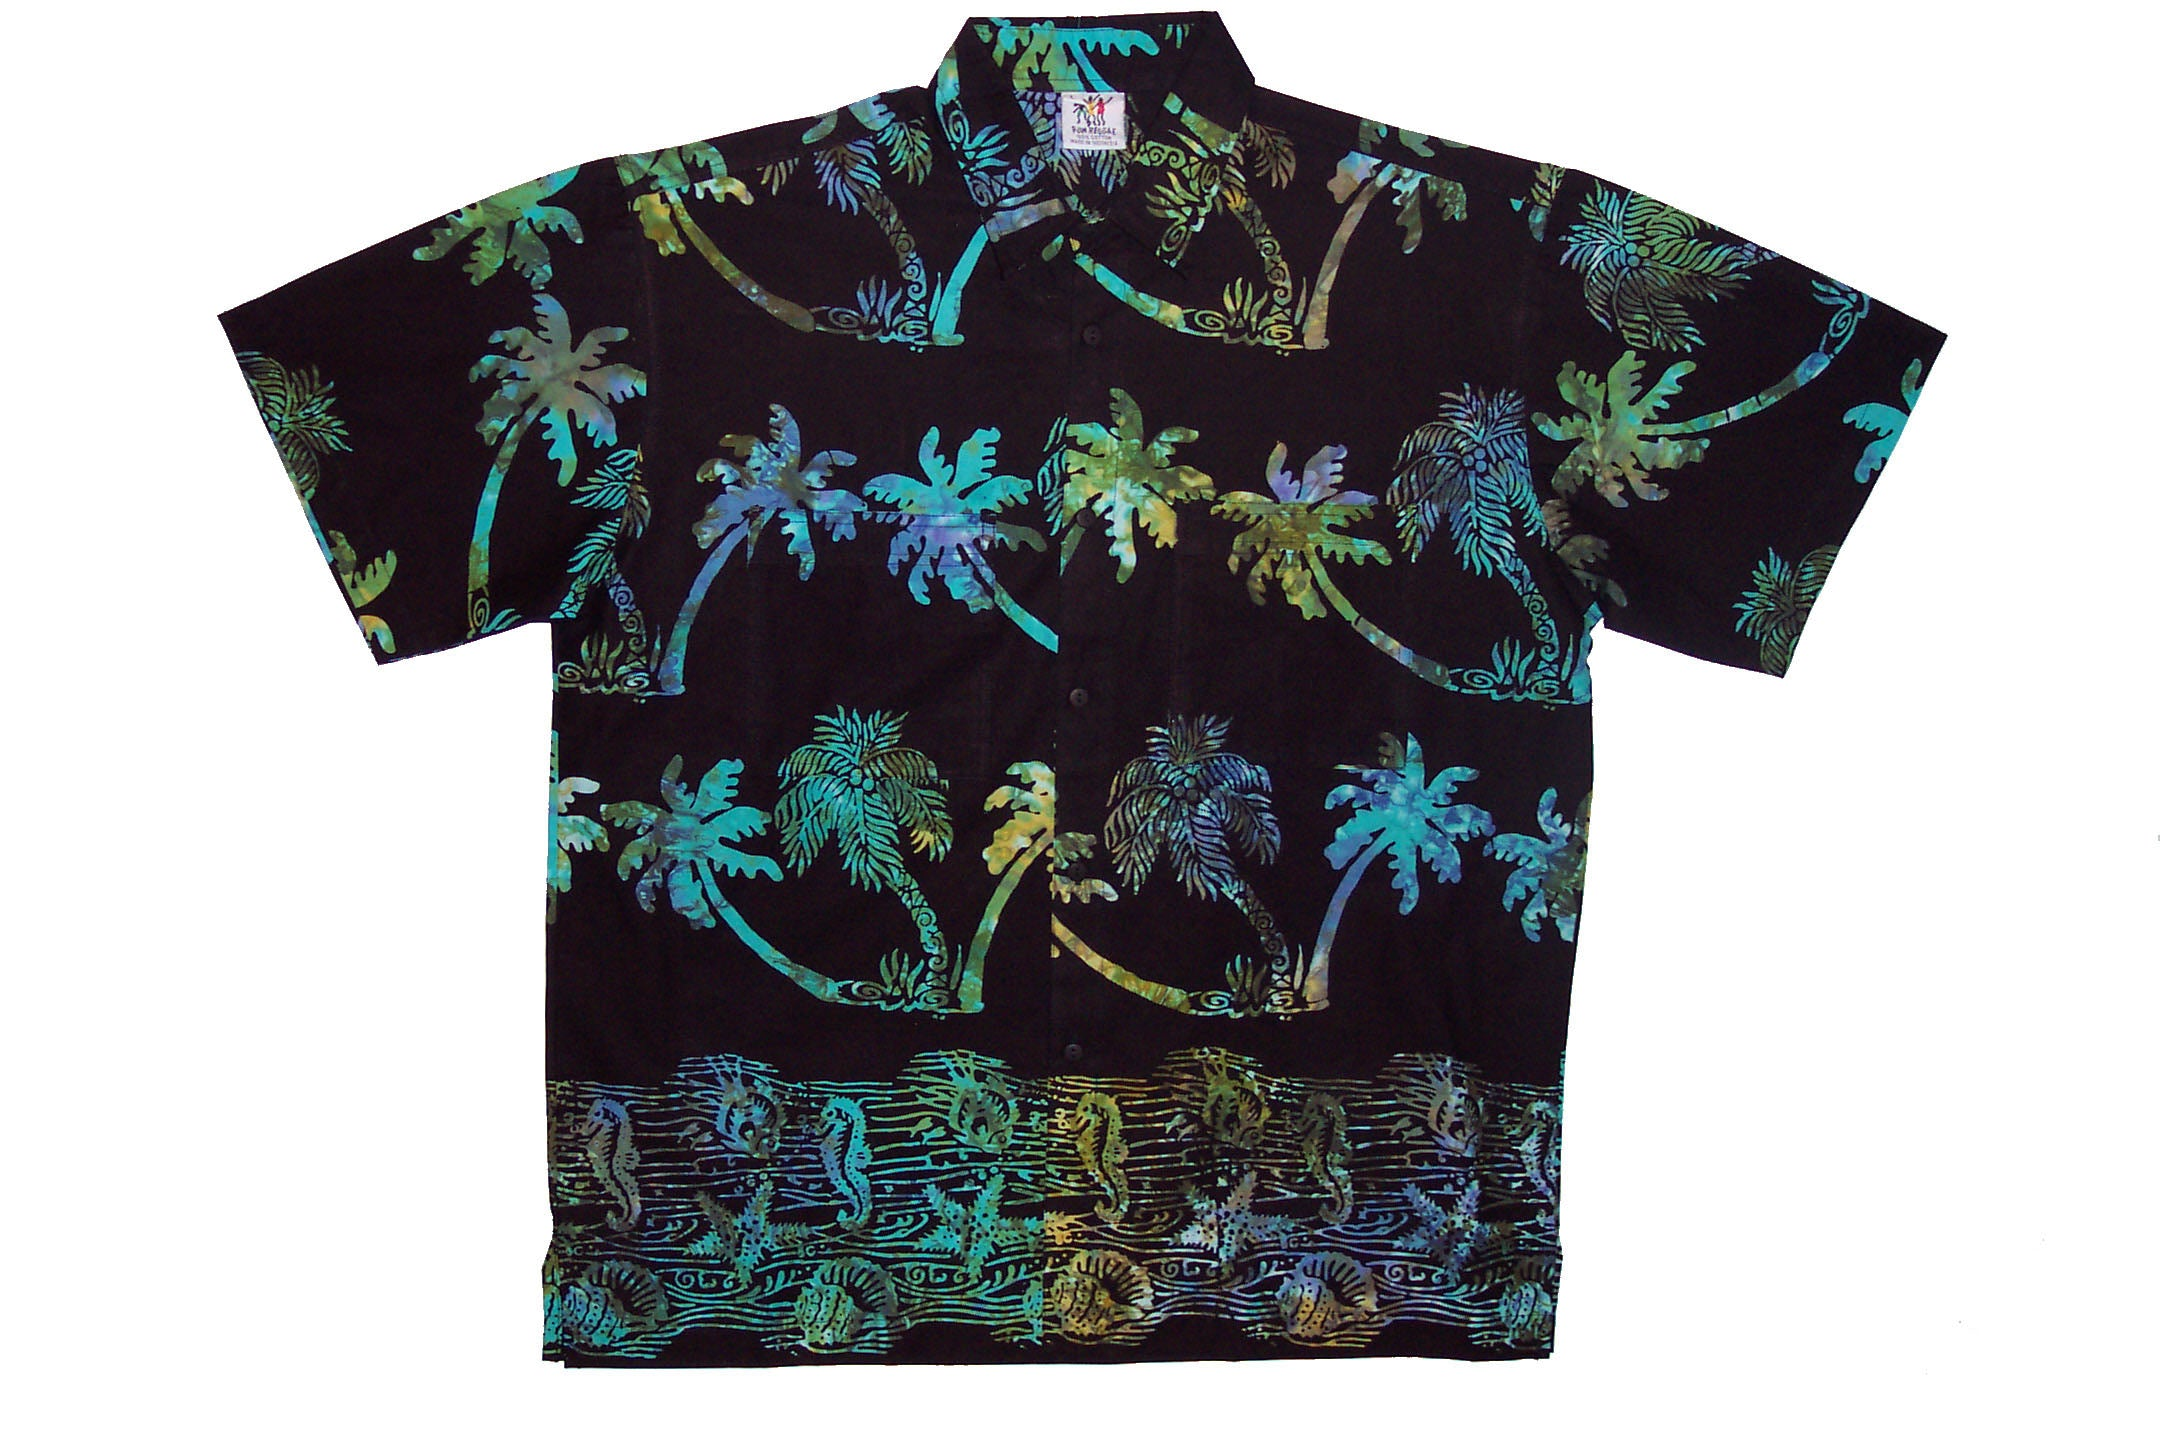 Coco_Tree_Islander_Batik_Rum_Reggae_Clothing_Handmade_Cabana_Shirt_Flower_Hibiscus_Fruit_Living_Garden_Rainforest_Maori_Polynesian_Vacation_Holiday_Island_Indonesia_Bali_Java_Hawaii_Caribbean_Equator_California_Tahiti_Fishes_Shell_Shells_Style_Lagoon